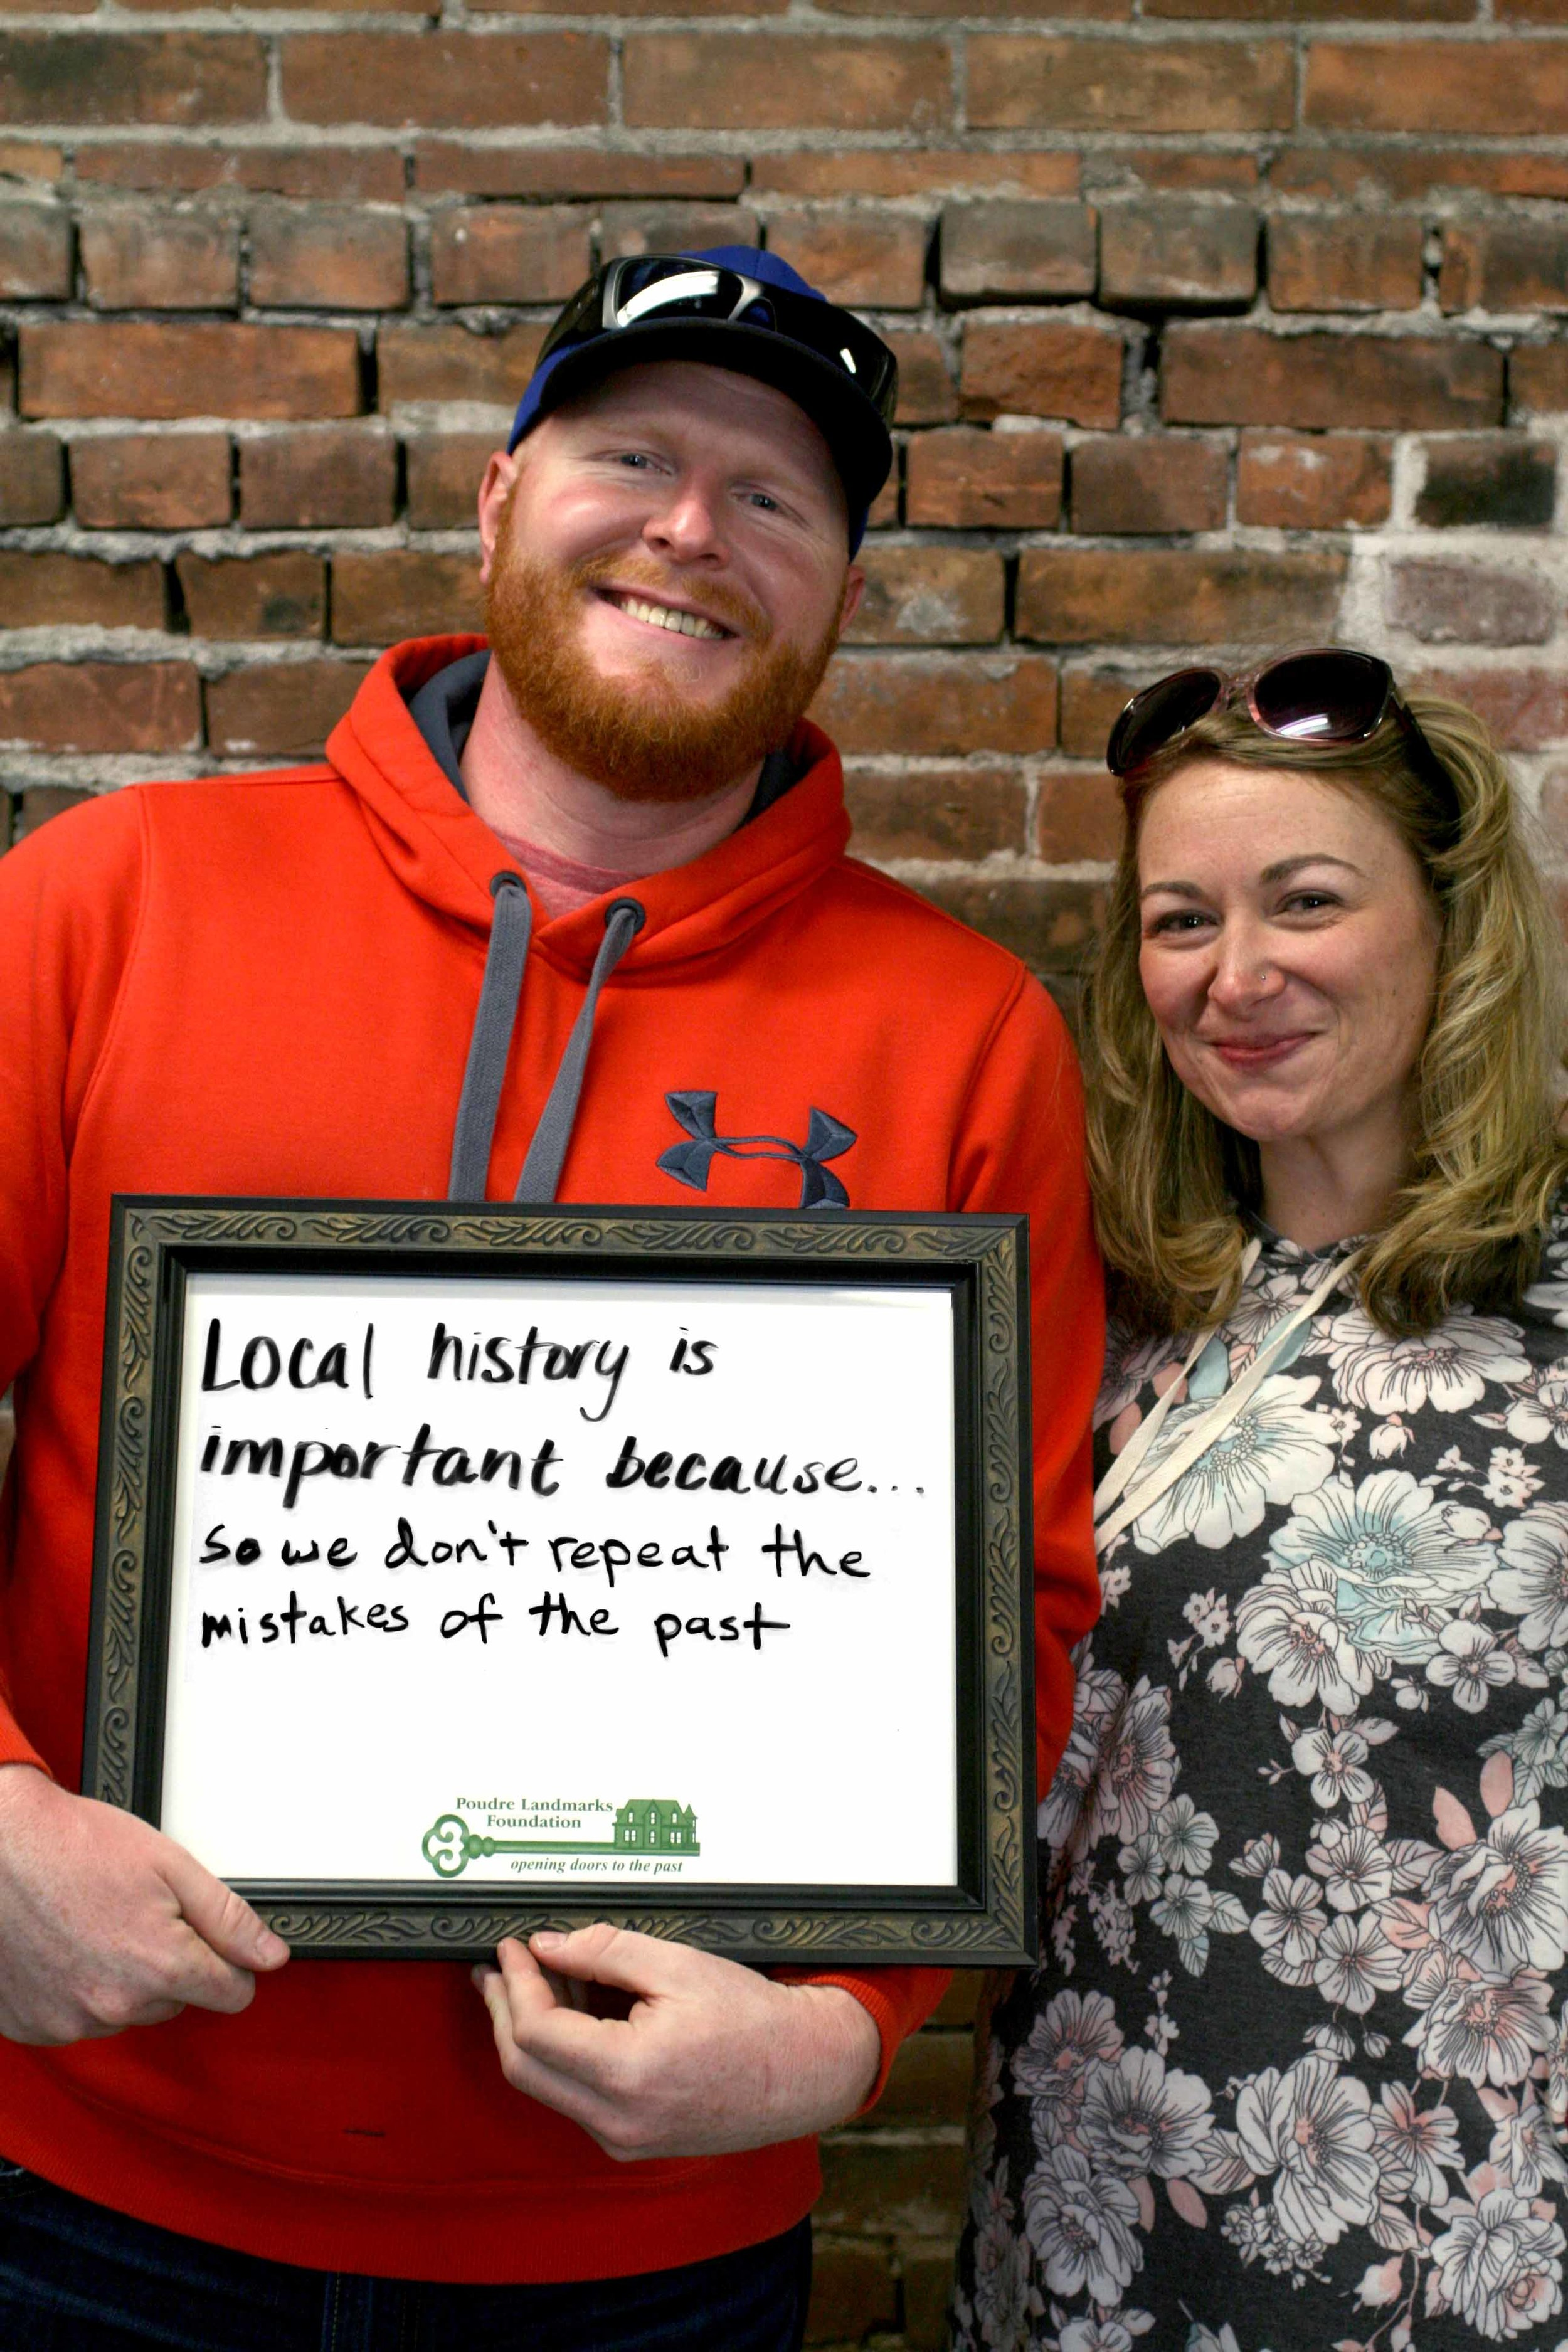 tabitha and justin share why local history matters